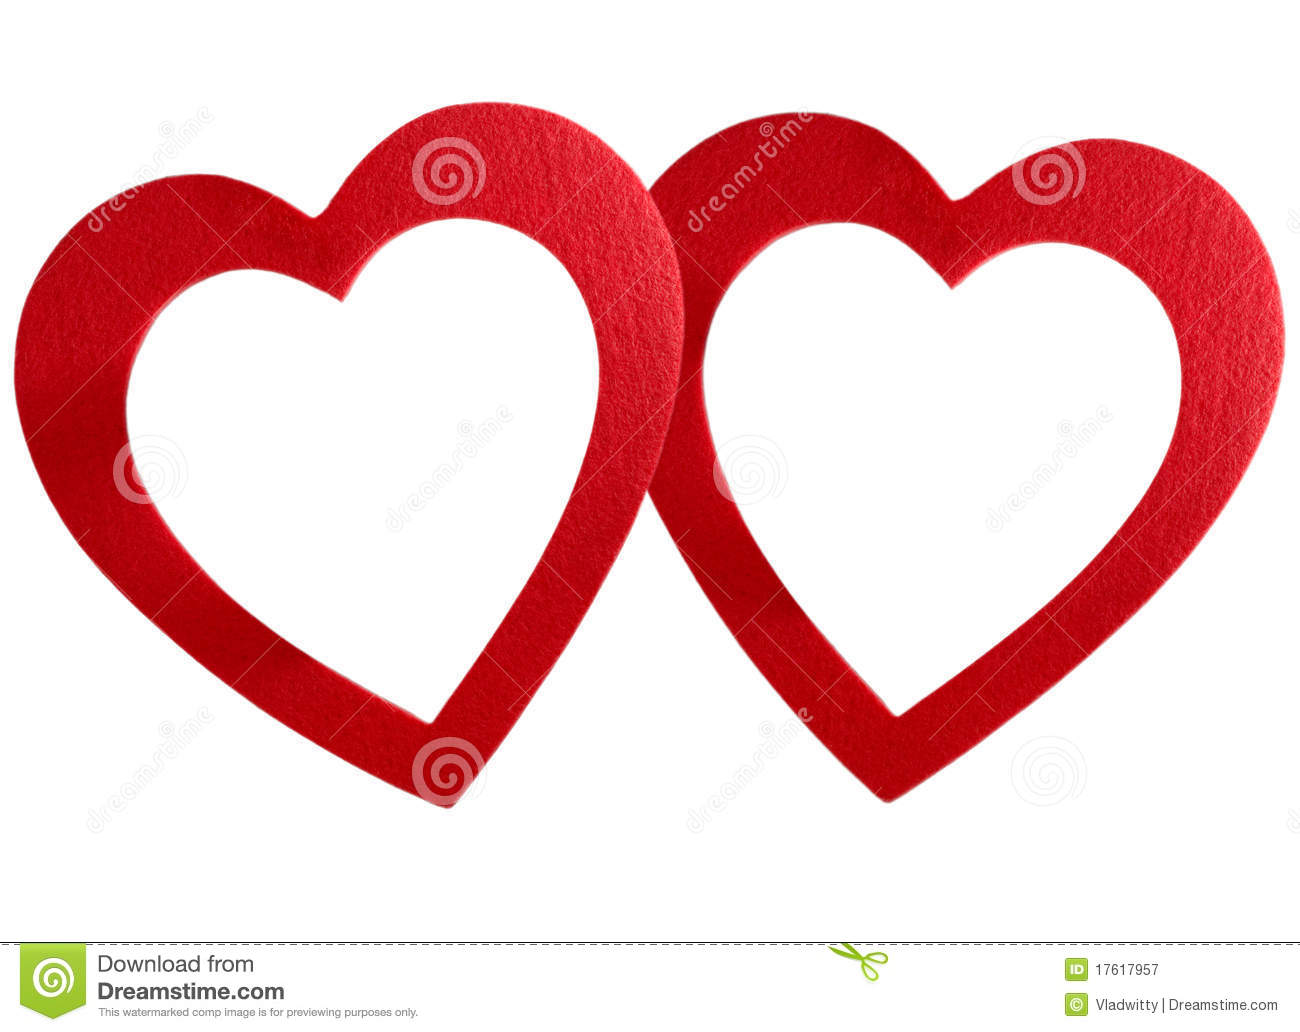 Bound hearts frame stock image. Image of happiness, design - 17617957